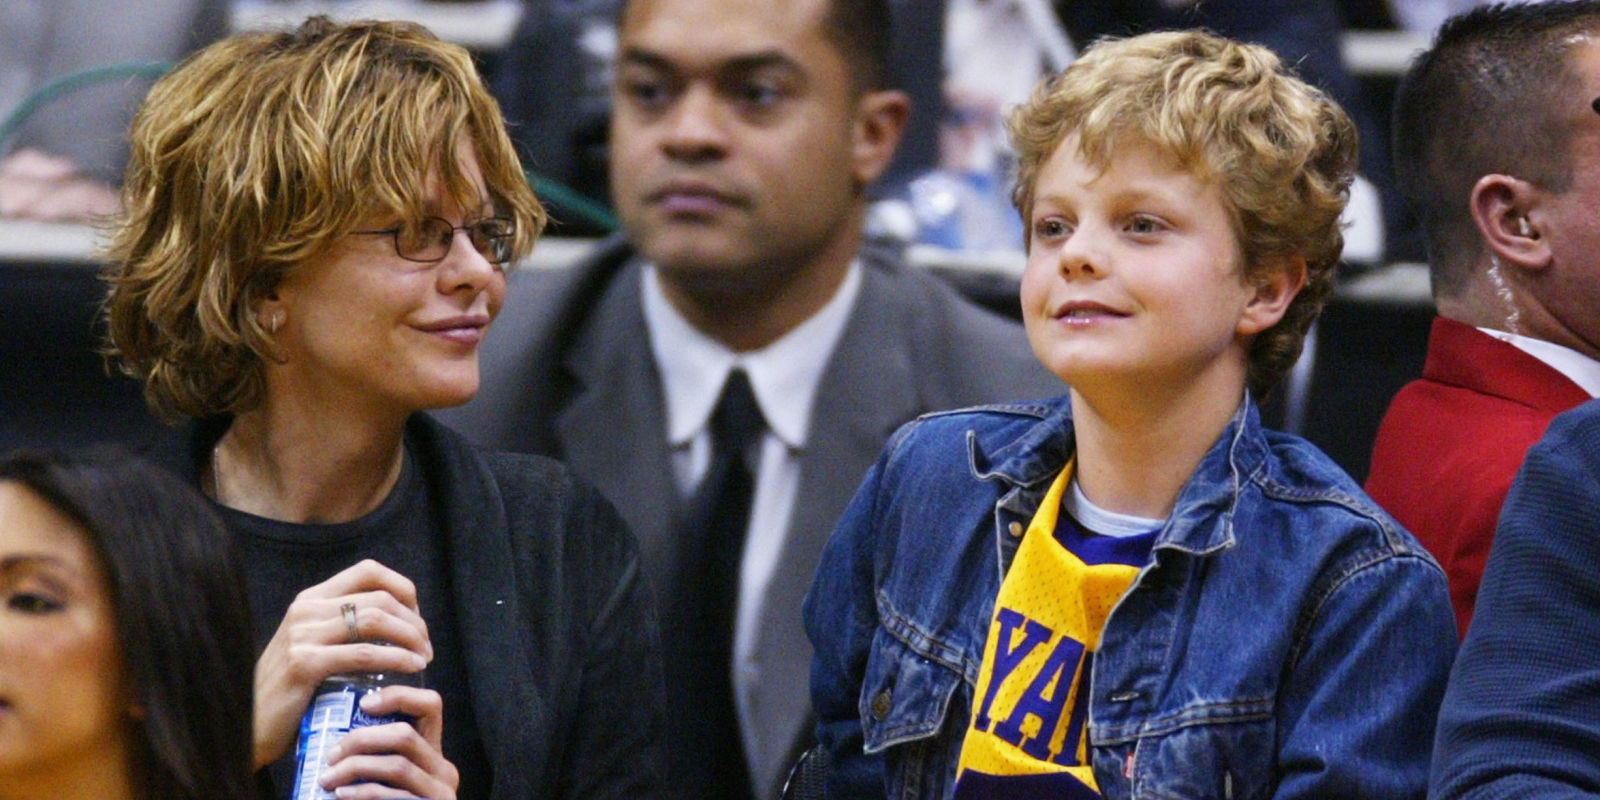 Meg Ryan and Dennis Quaid's Son Is All Grown Up And He's ...